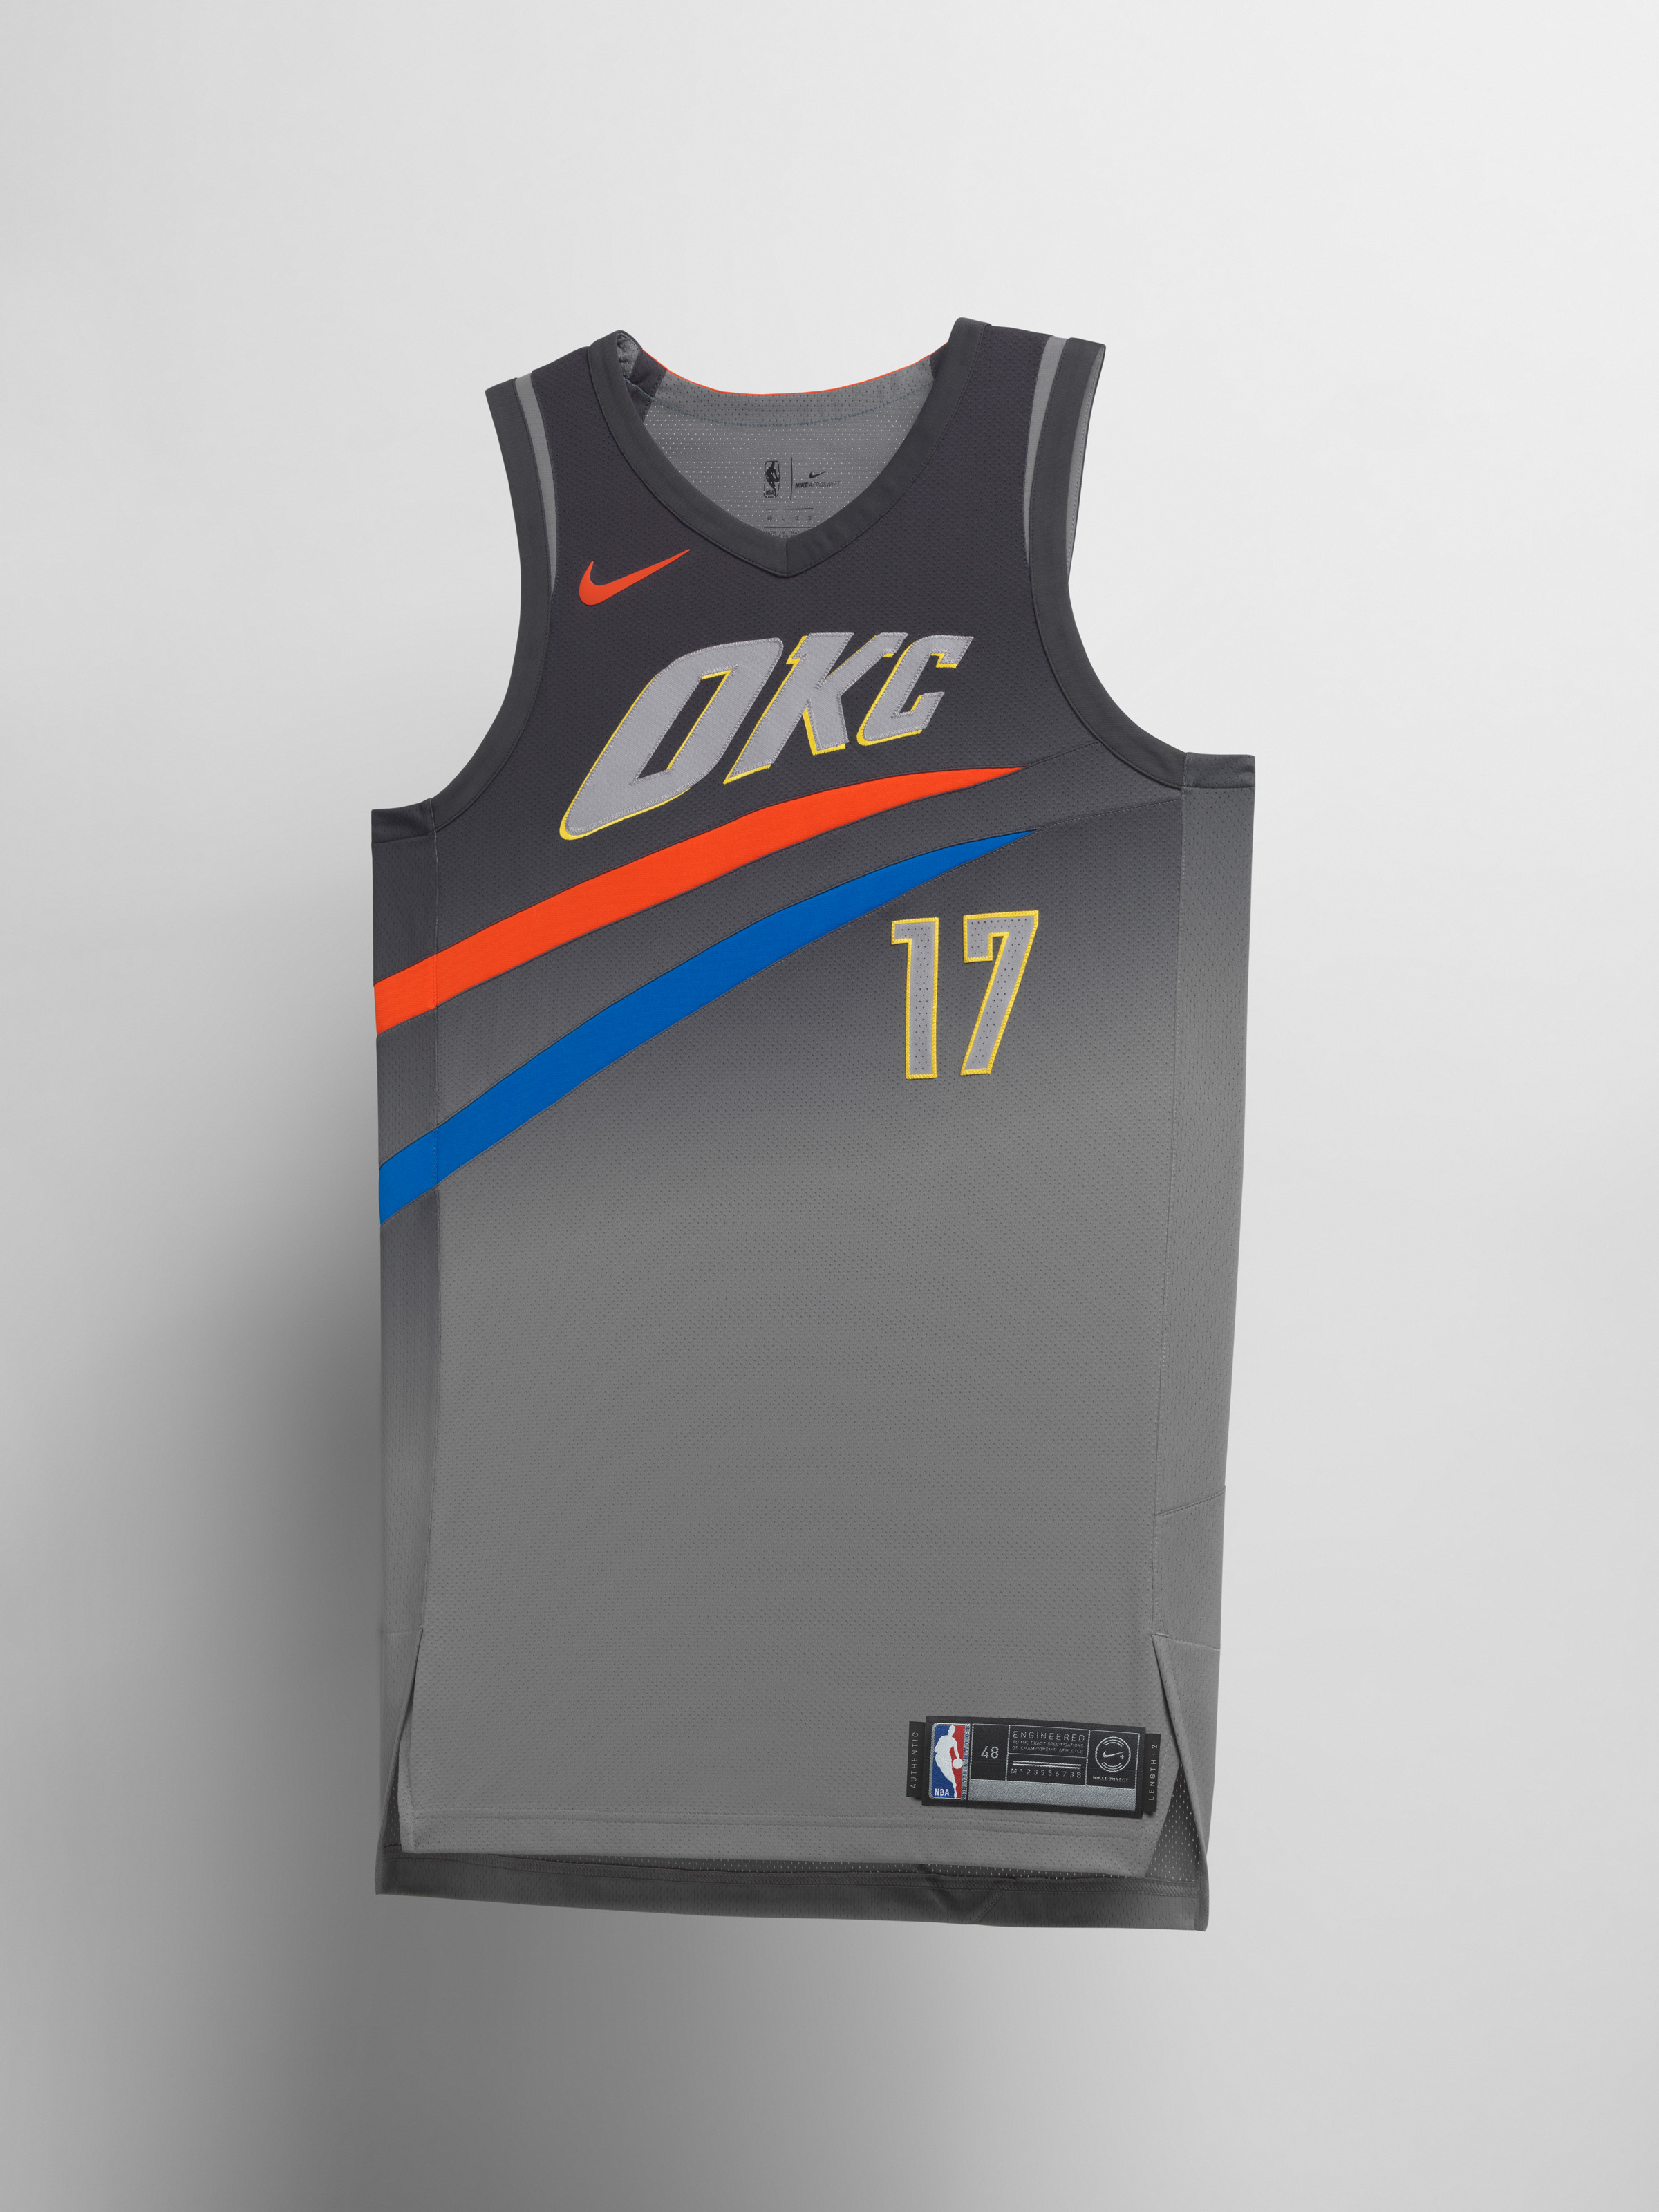 Nike unveils City Edition uniforms for 26 NBA teams 237e948af